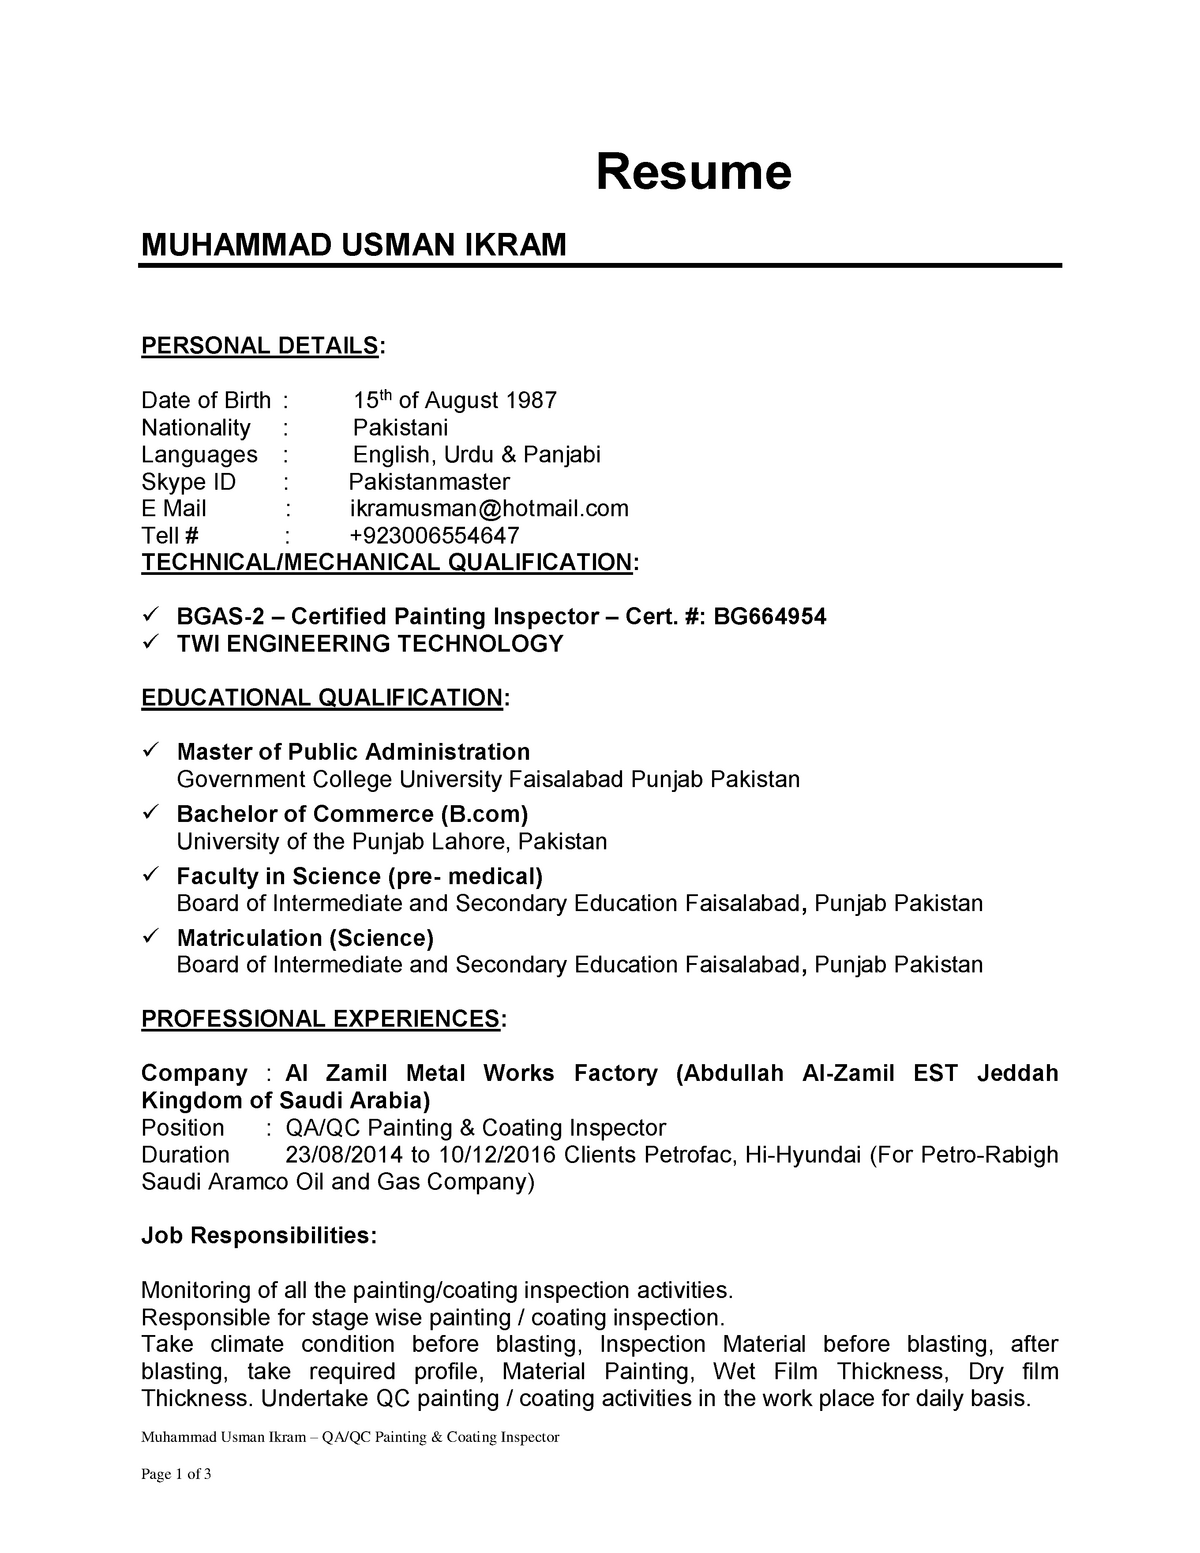 Muhammad Usman Ikra(QC Coating inpsector) - WORK6117